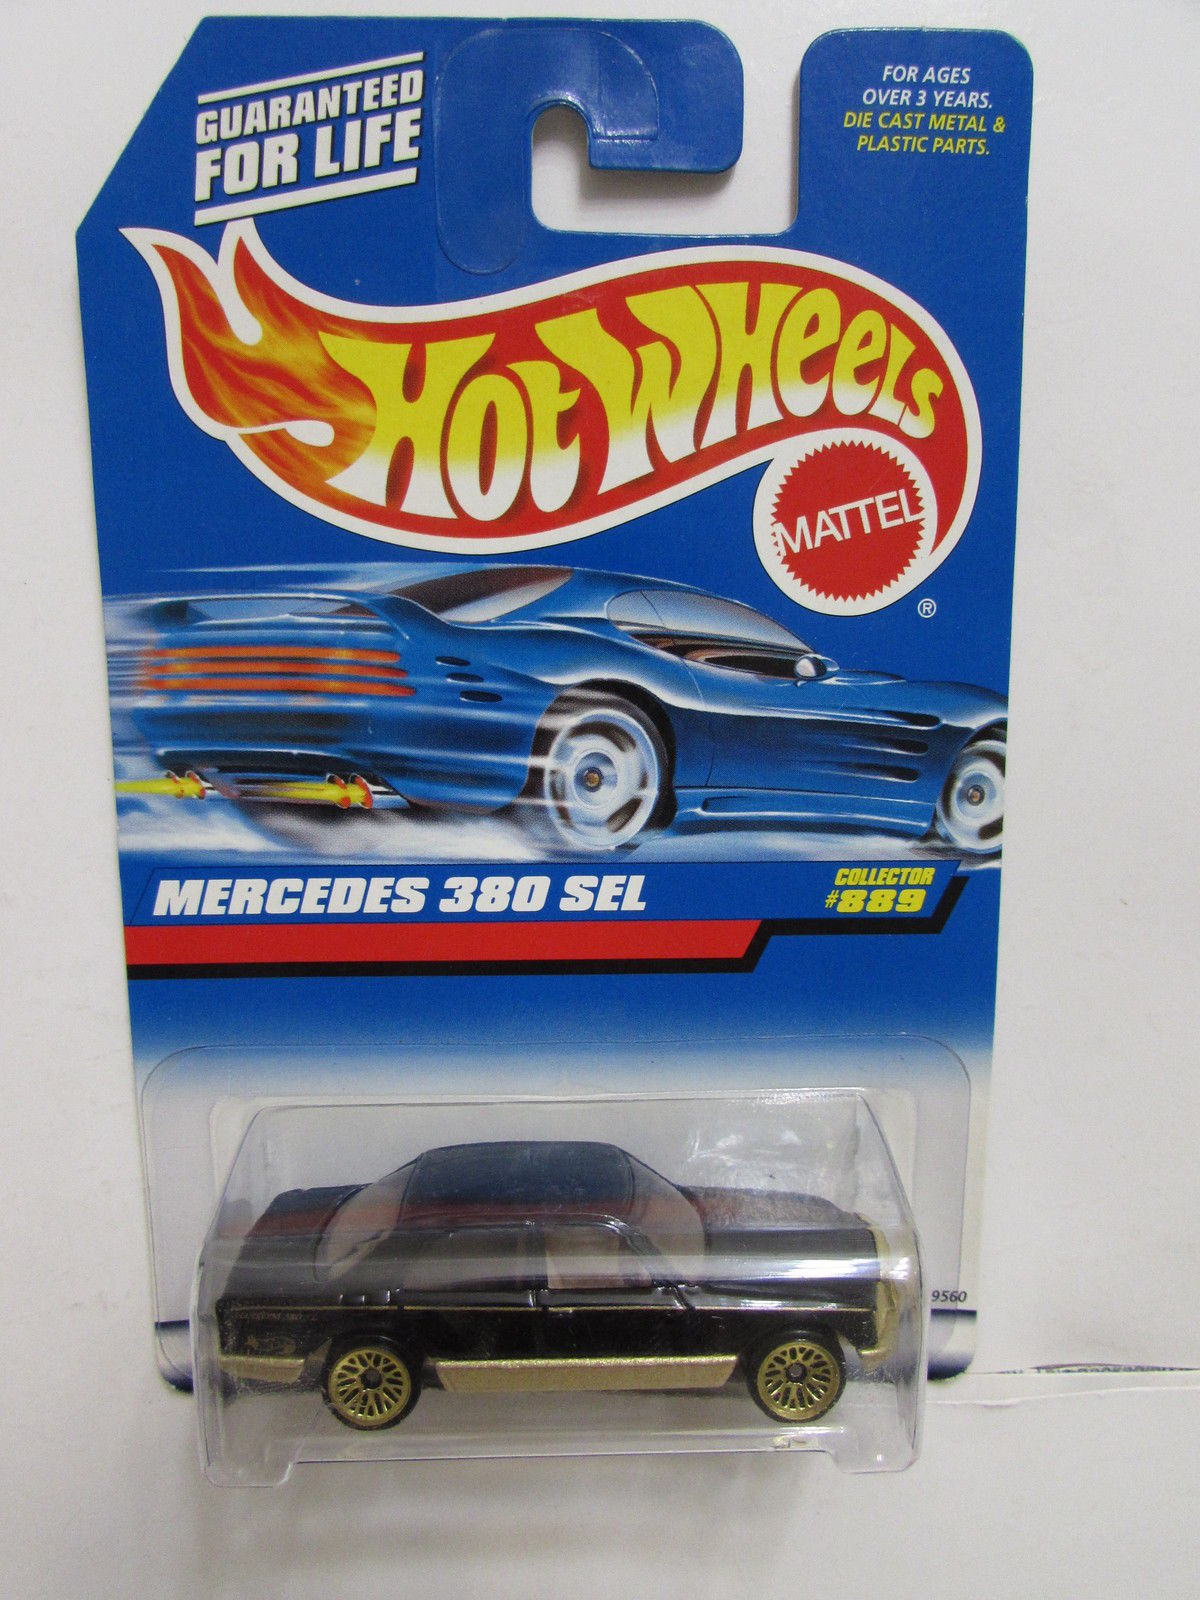 HOT WHEELS 1998 MERCEDES 380 SEL #889 BLACK